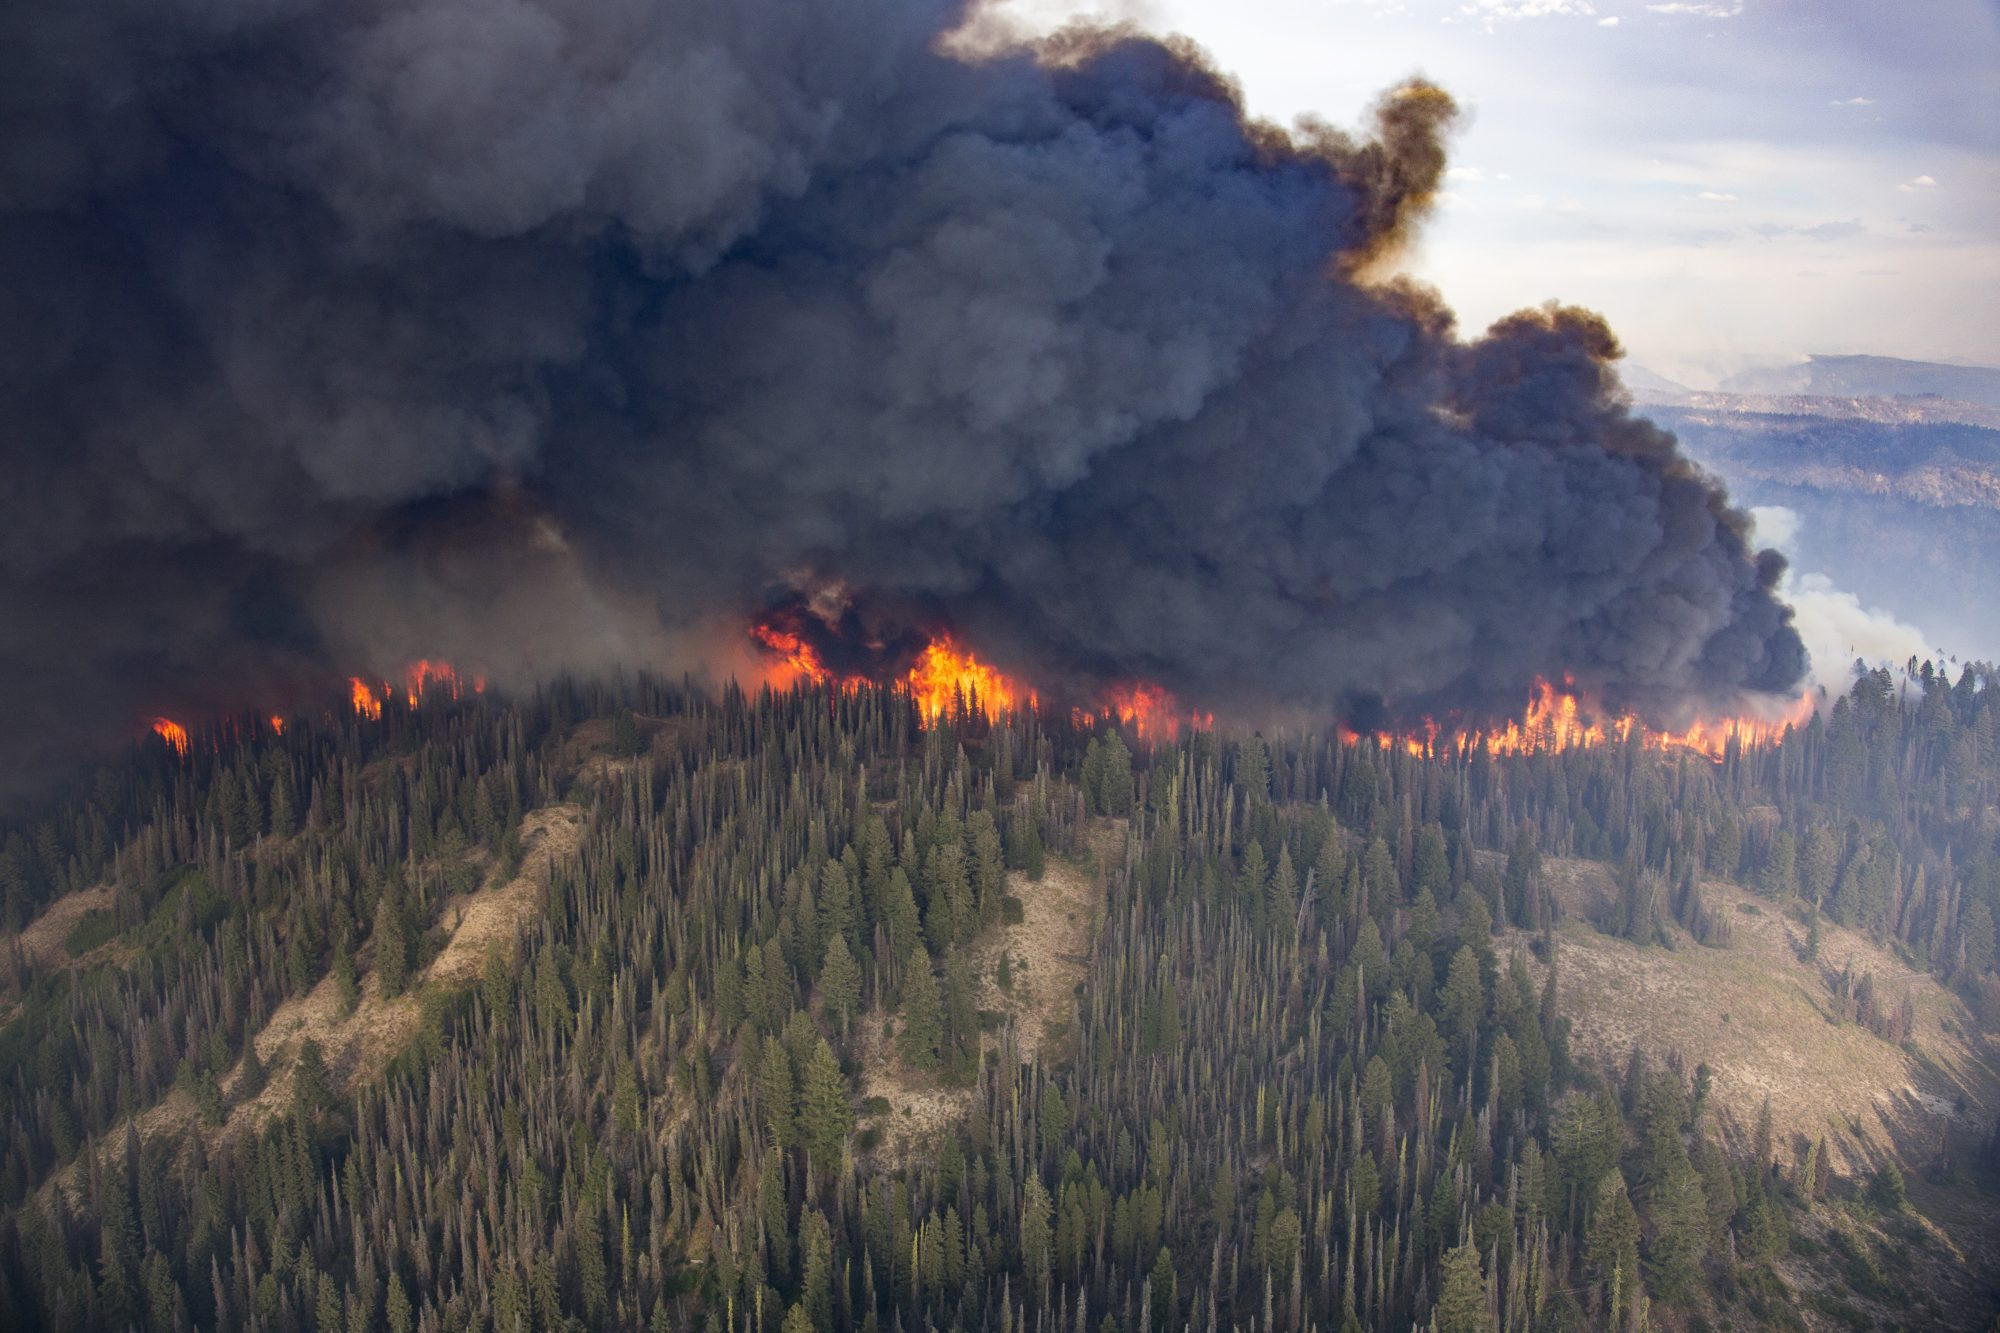 Black plumes of smoke engulf a forest ridge during the Pioneer Fire in Boise National Forest, Idaho, 2016